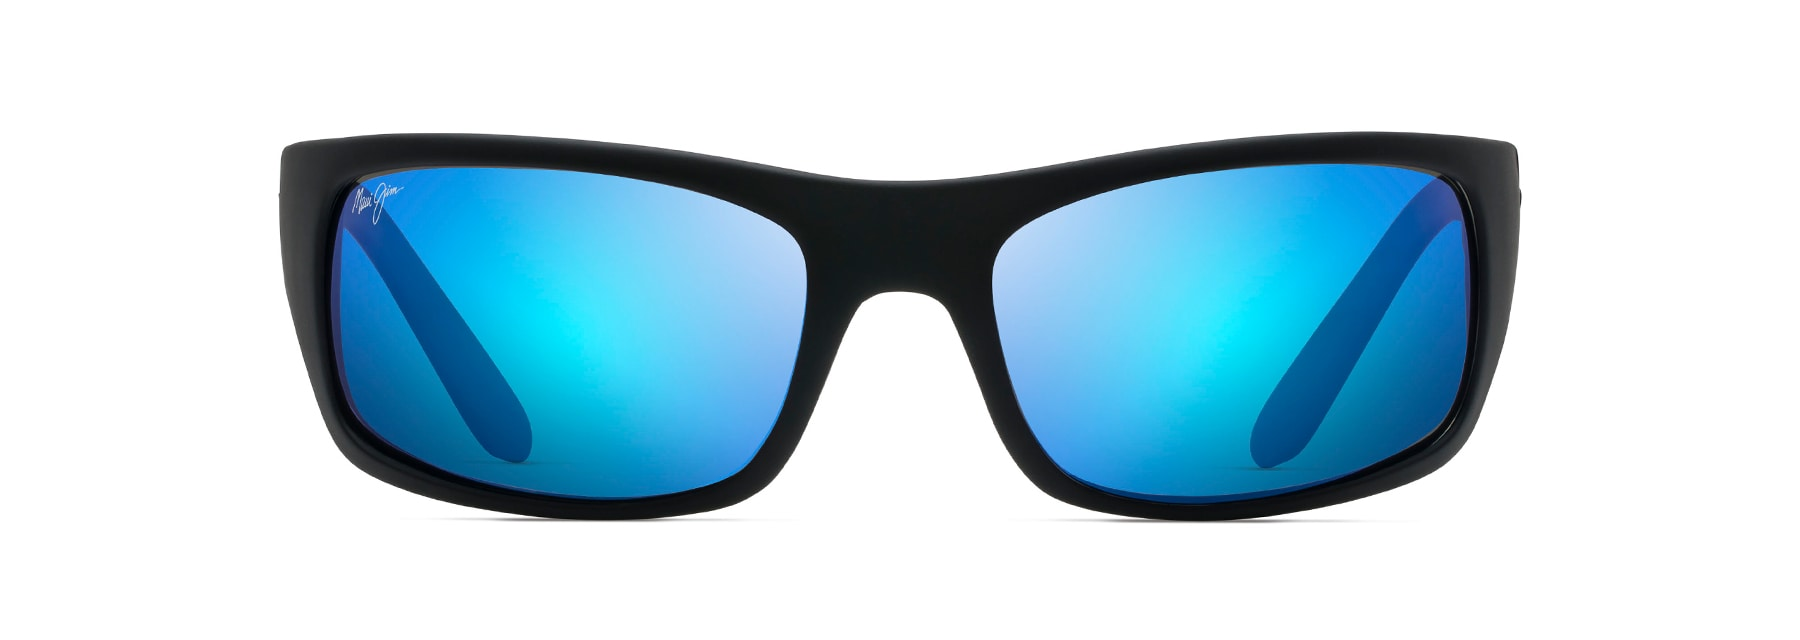 39de8fc5d0 Peahi Polarized Sunglasses